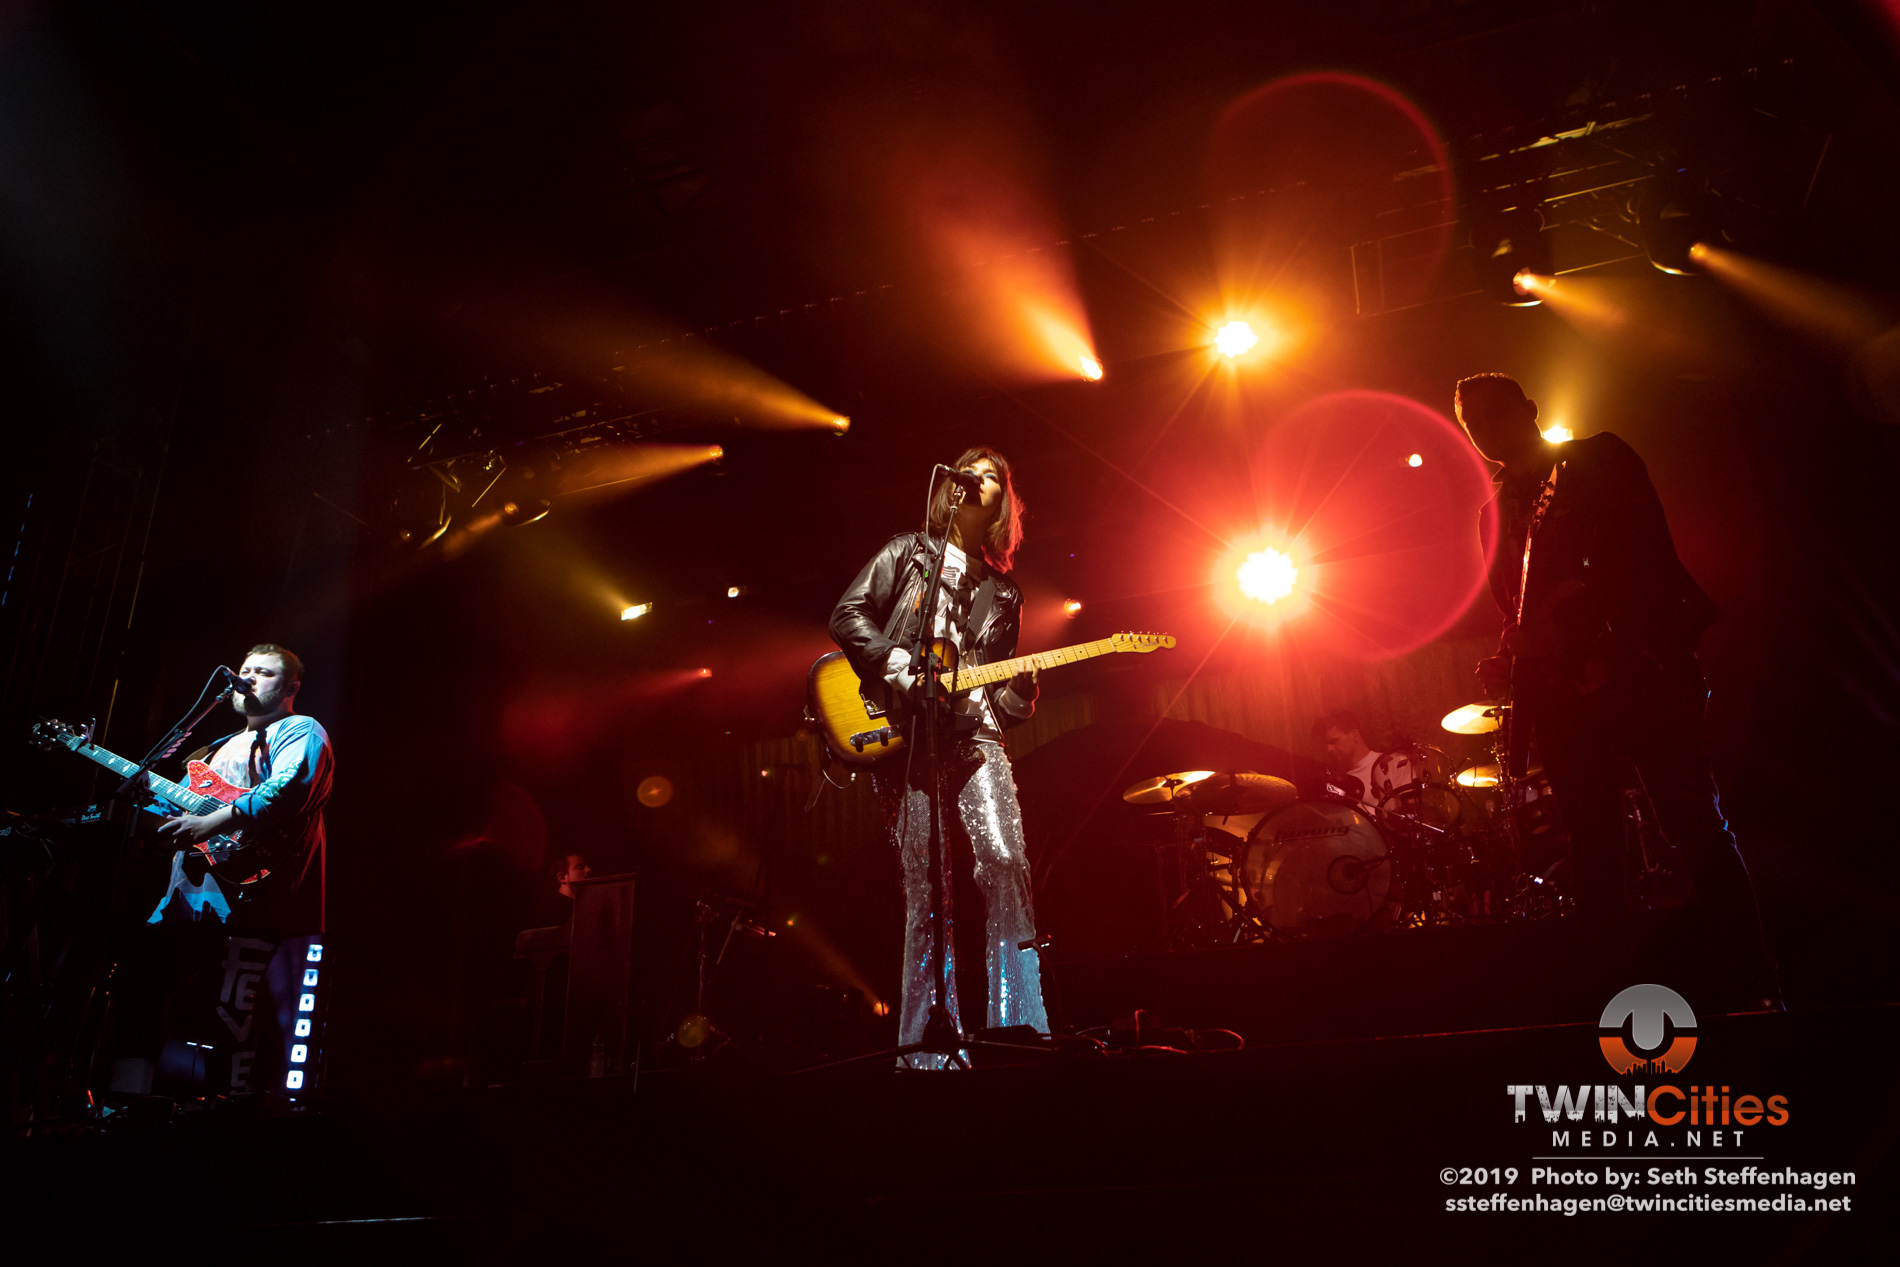 September 14, 2019 - Minneapolis, Minnesota, United States - Of Monsters And Men live in concert at Surly Brewing Festival Field along with Lower Dens as the openers.(Photo by Seth Steffenhagen/Steffenhagen Photography)